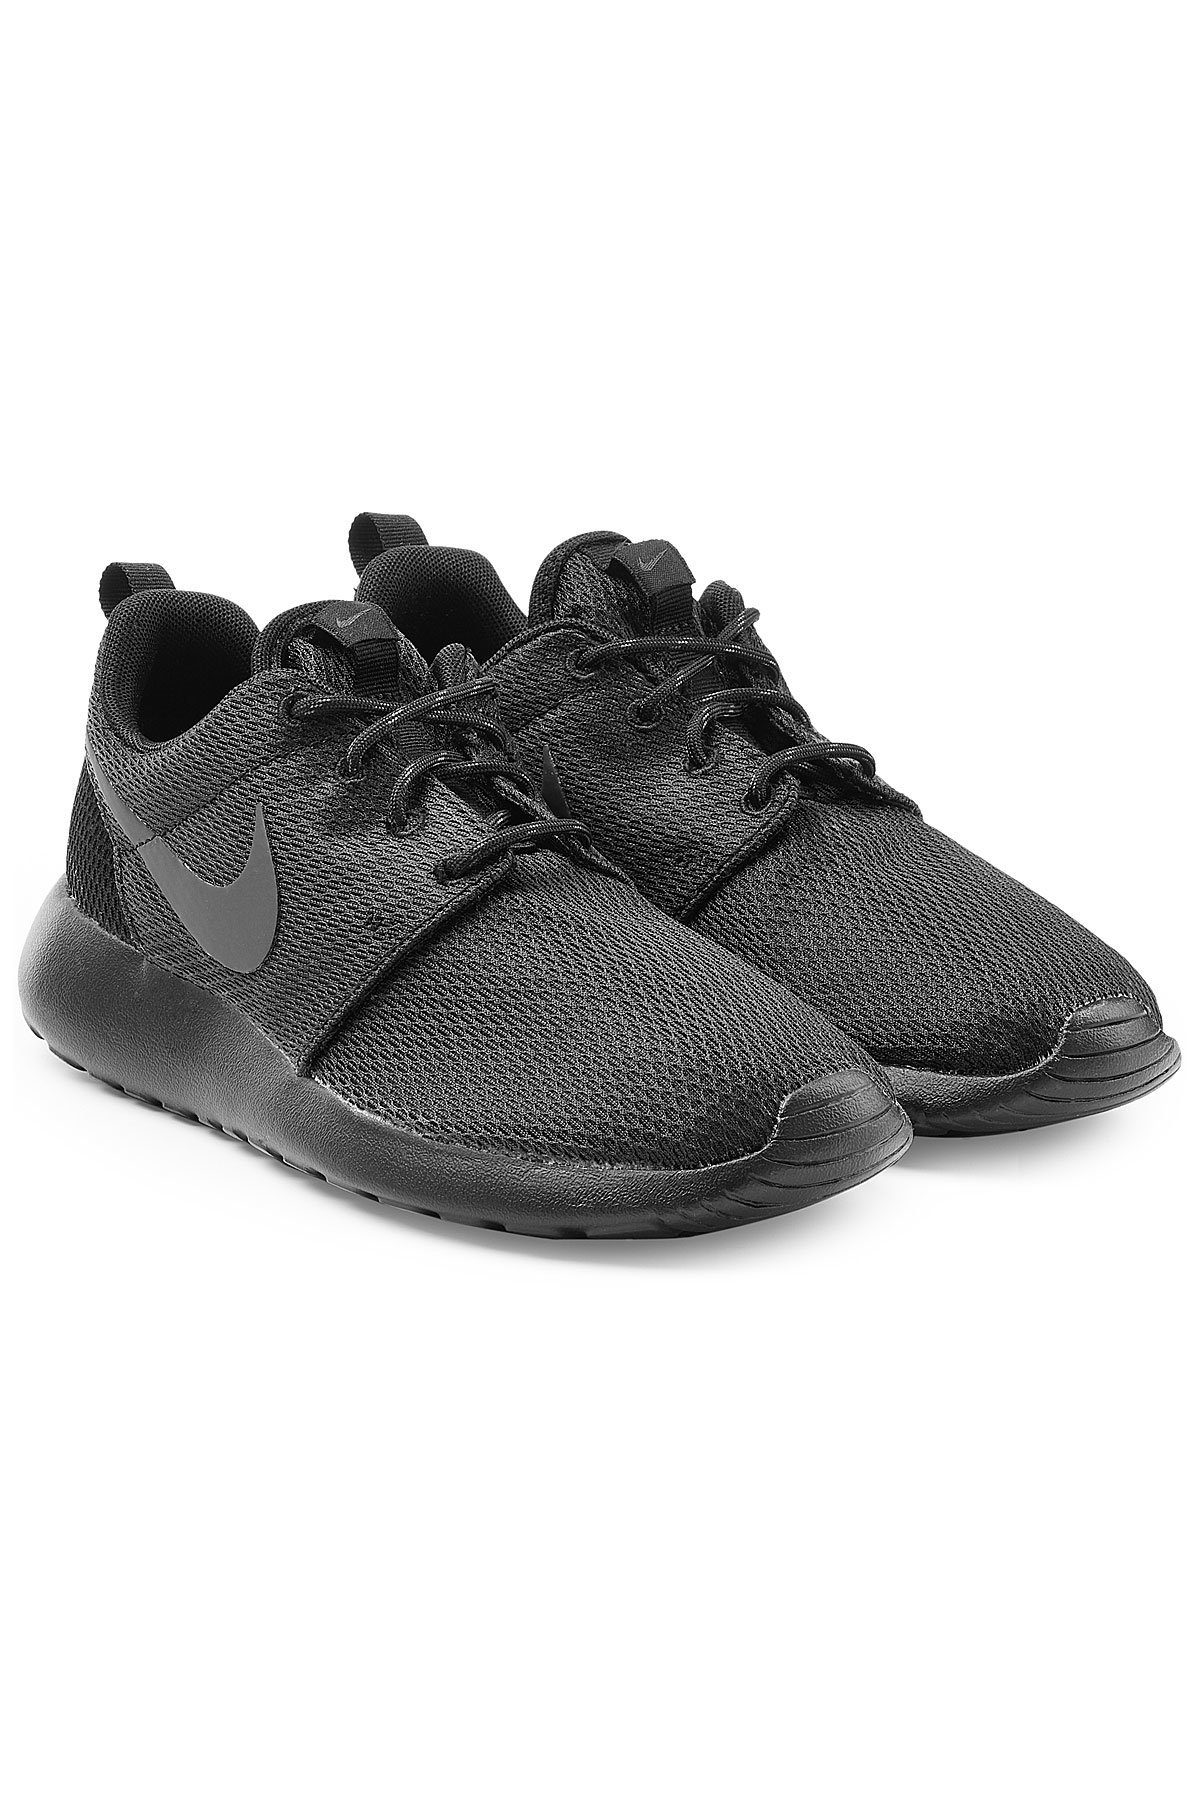 Roshe One Sneakers Gr. US 10